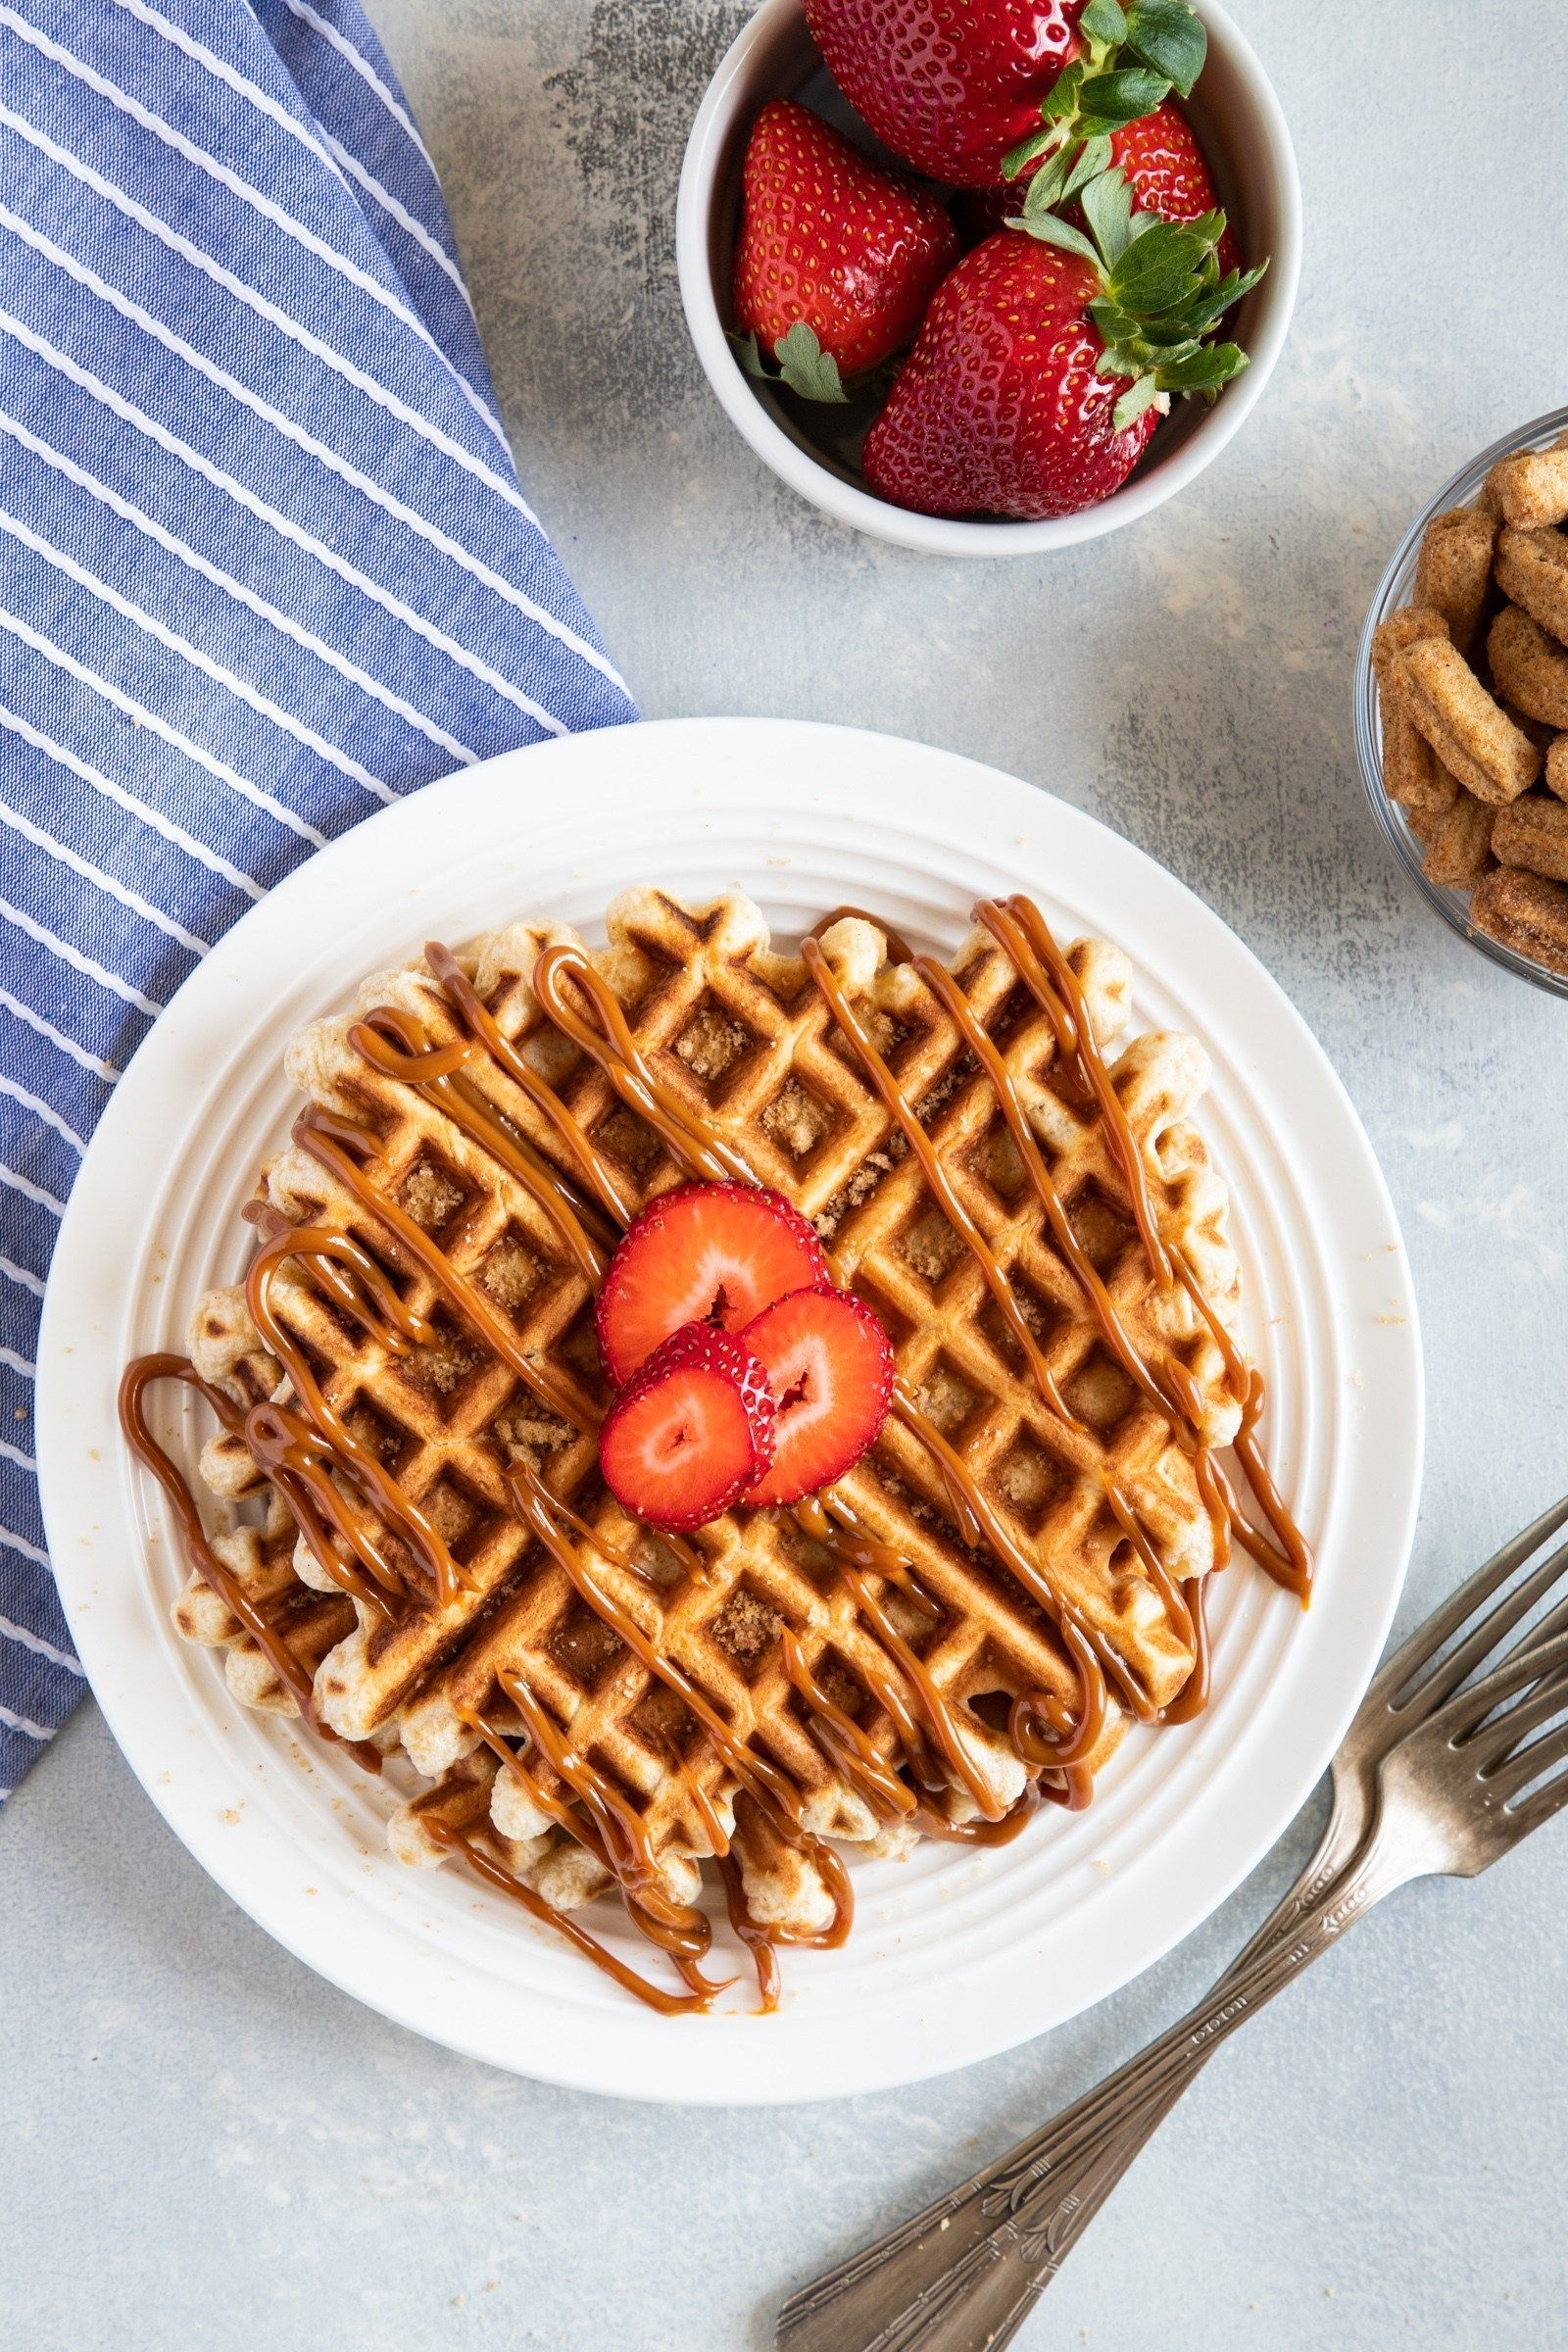 Cinnamon Toast Crunch Churros Waffles with Dulce de Leche #cinnamontoastcrunch With cereal pieces mixed right into the waffle batter, this Cinnamon Toast Crunch Churros Waffles with Dulce de Leche recipe is a playful twist on the classic waffle for a fun and delicious breakfast.  #ad #smartlittlecookie #Churros #Waffles #breakfastrecipes #dulcedeleche #cinnamontoastcrunch Cinnamon Toast Crunch Churros Waffles with Dulce de Leche #cinnamontoastcrunch With cereal pieces mixed right into the waffle #cinnamontoastcrunch